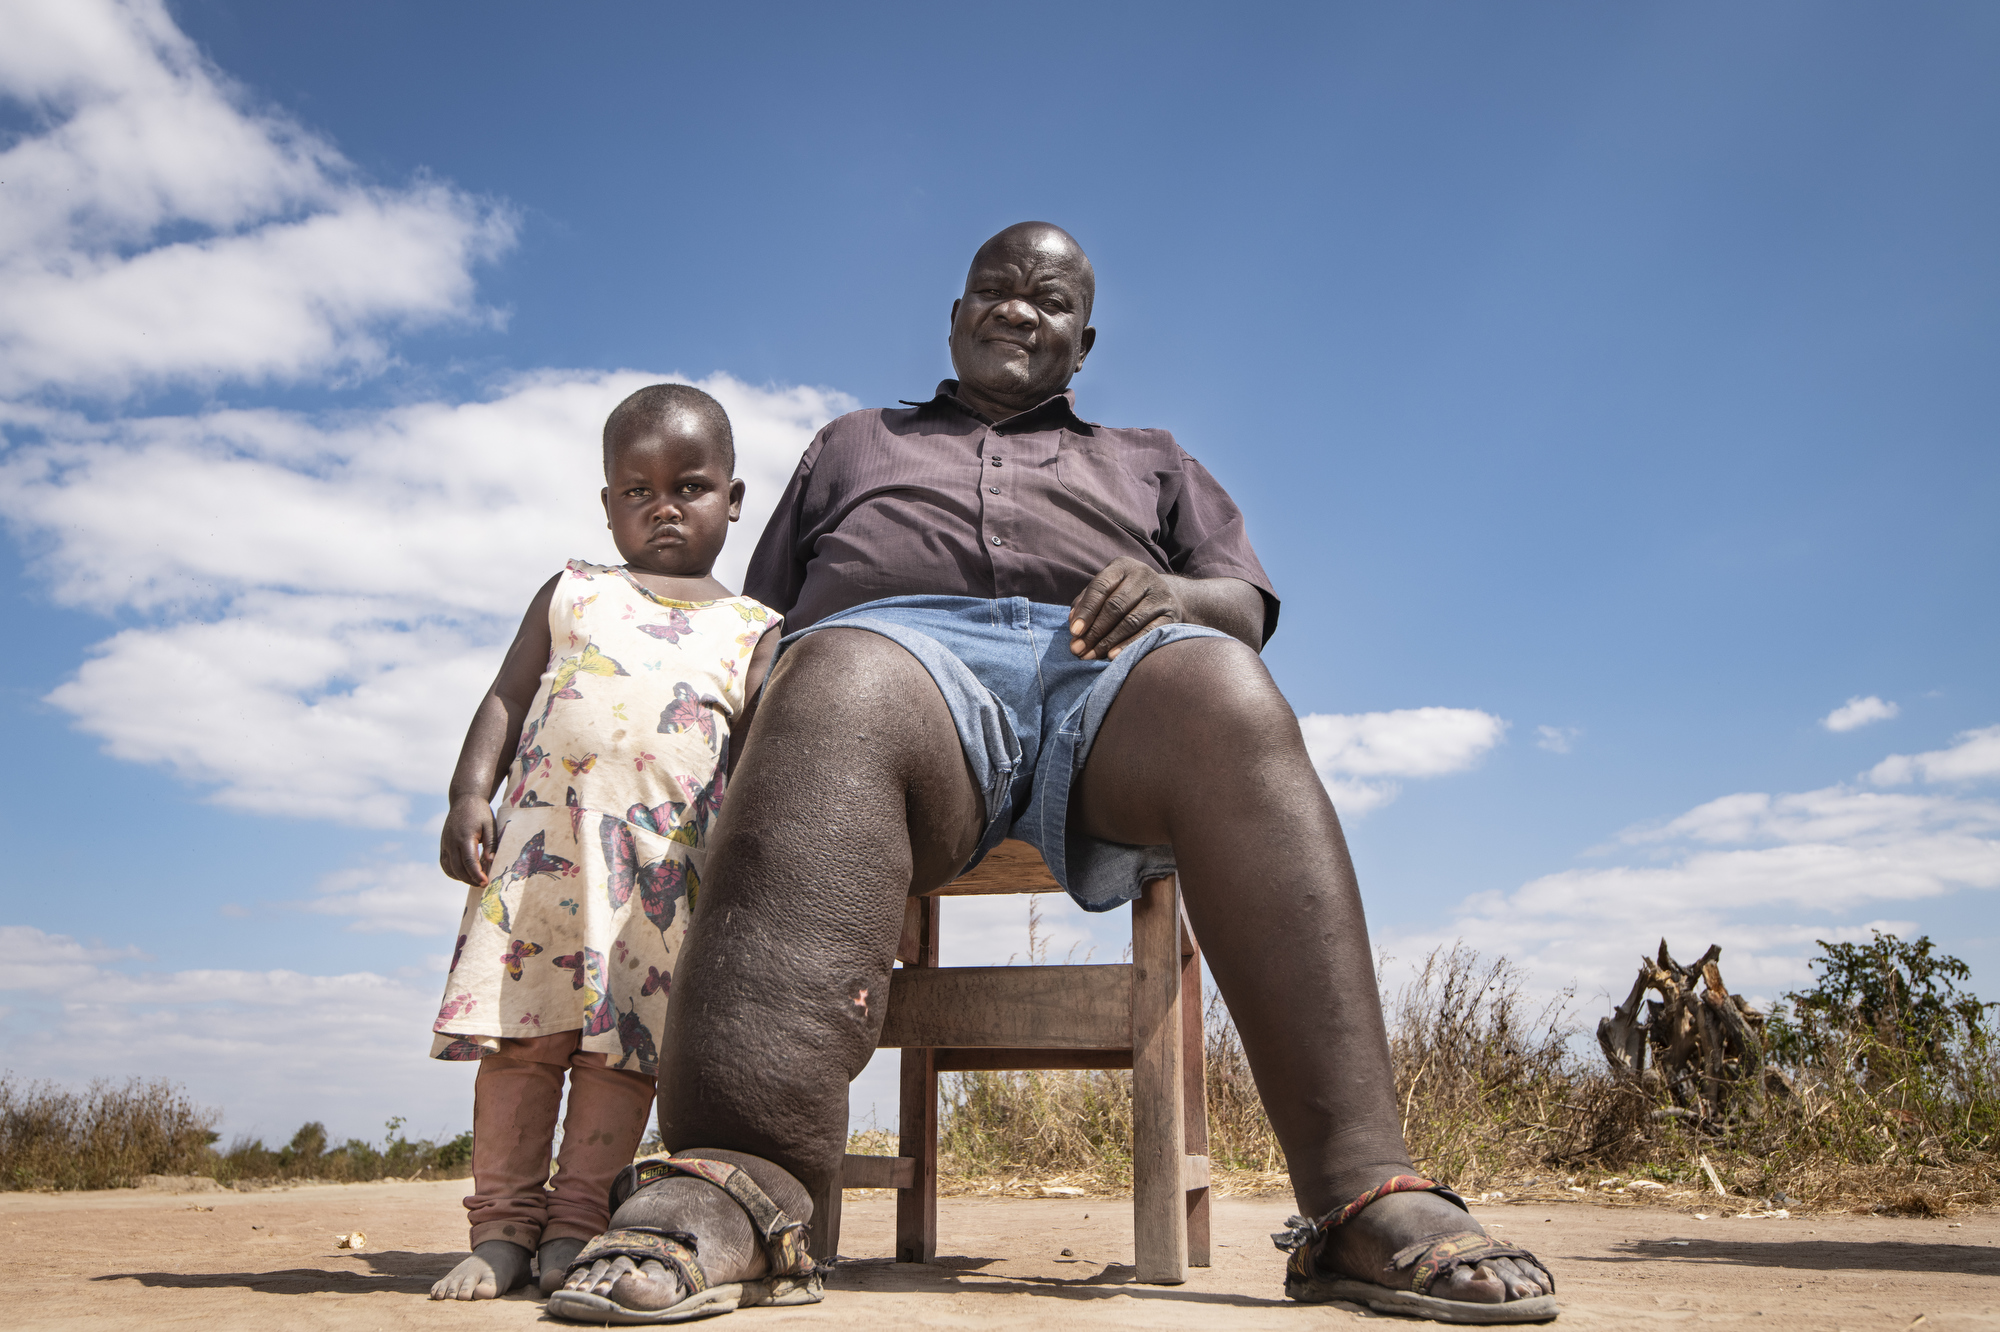 Malawi fights a crippling parasite